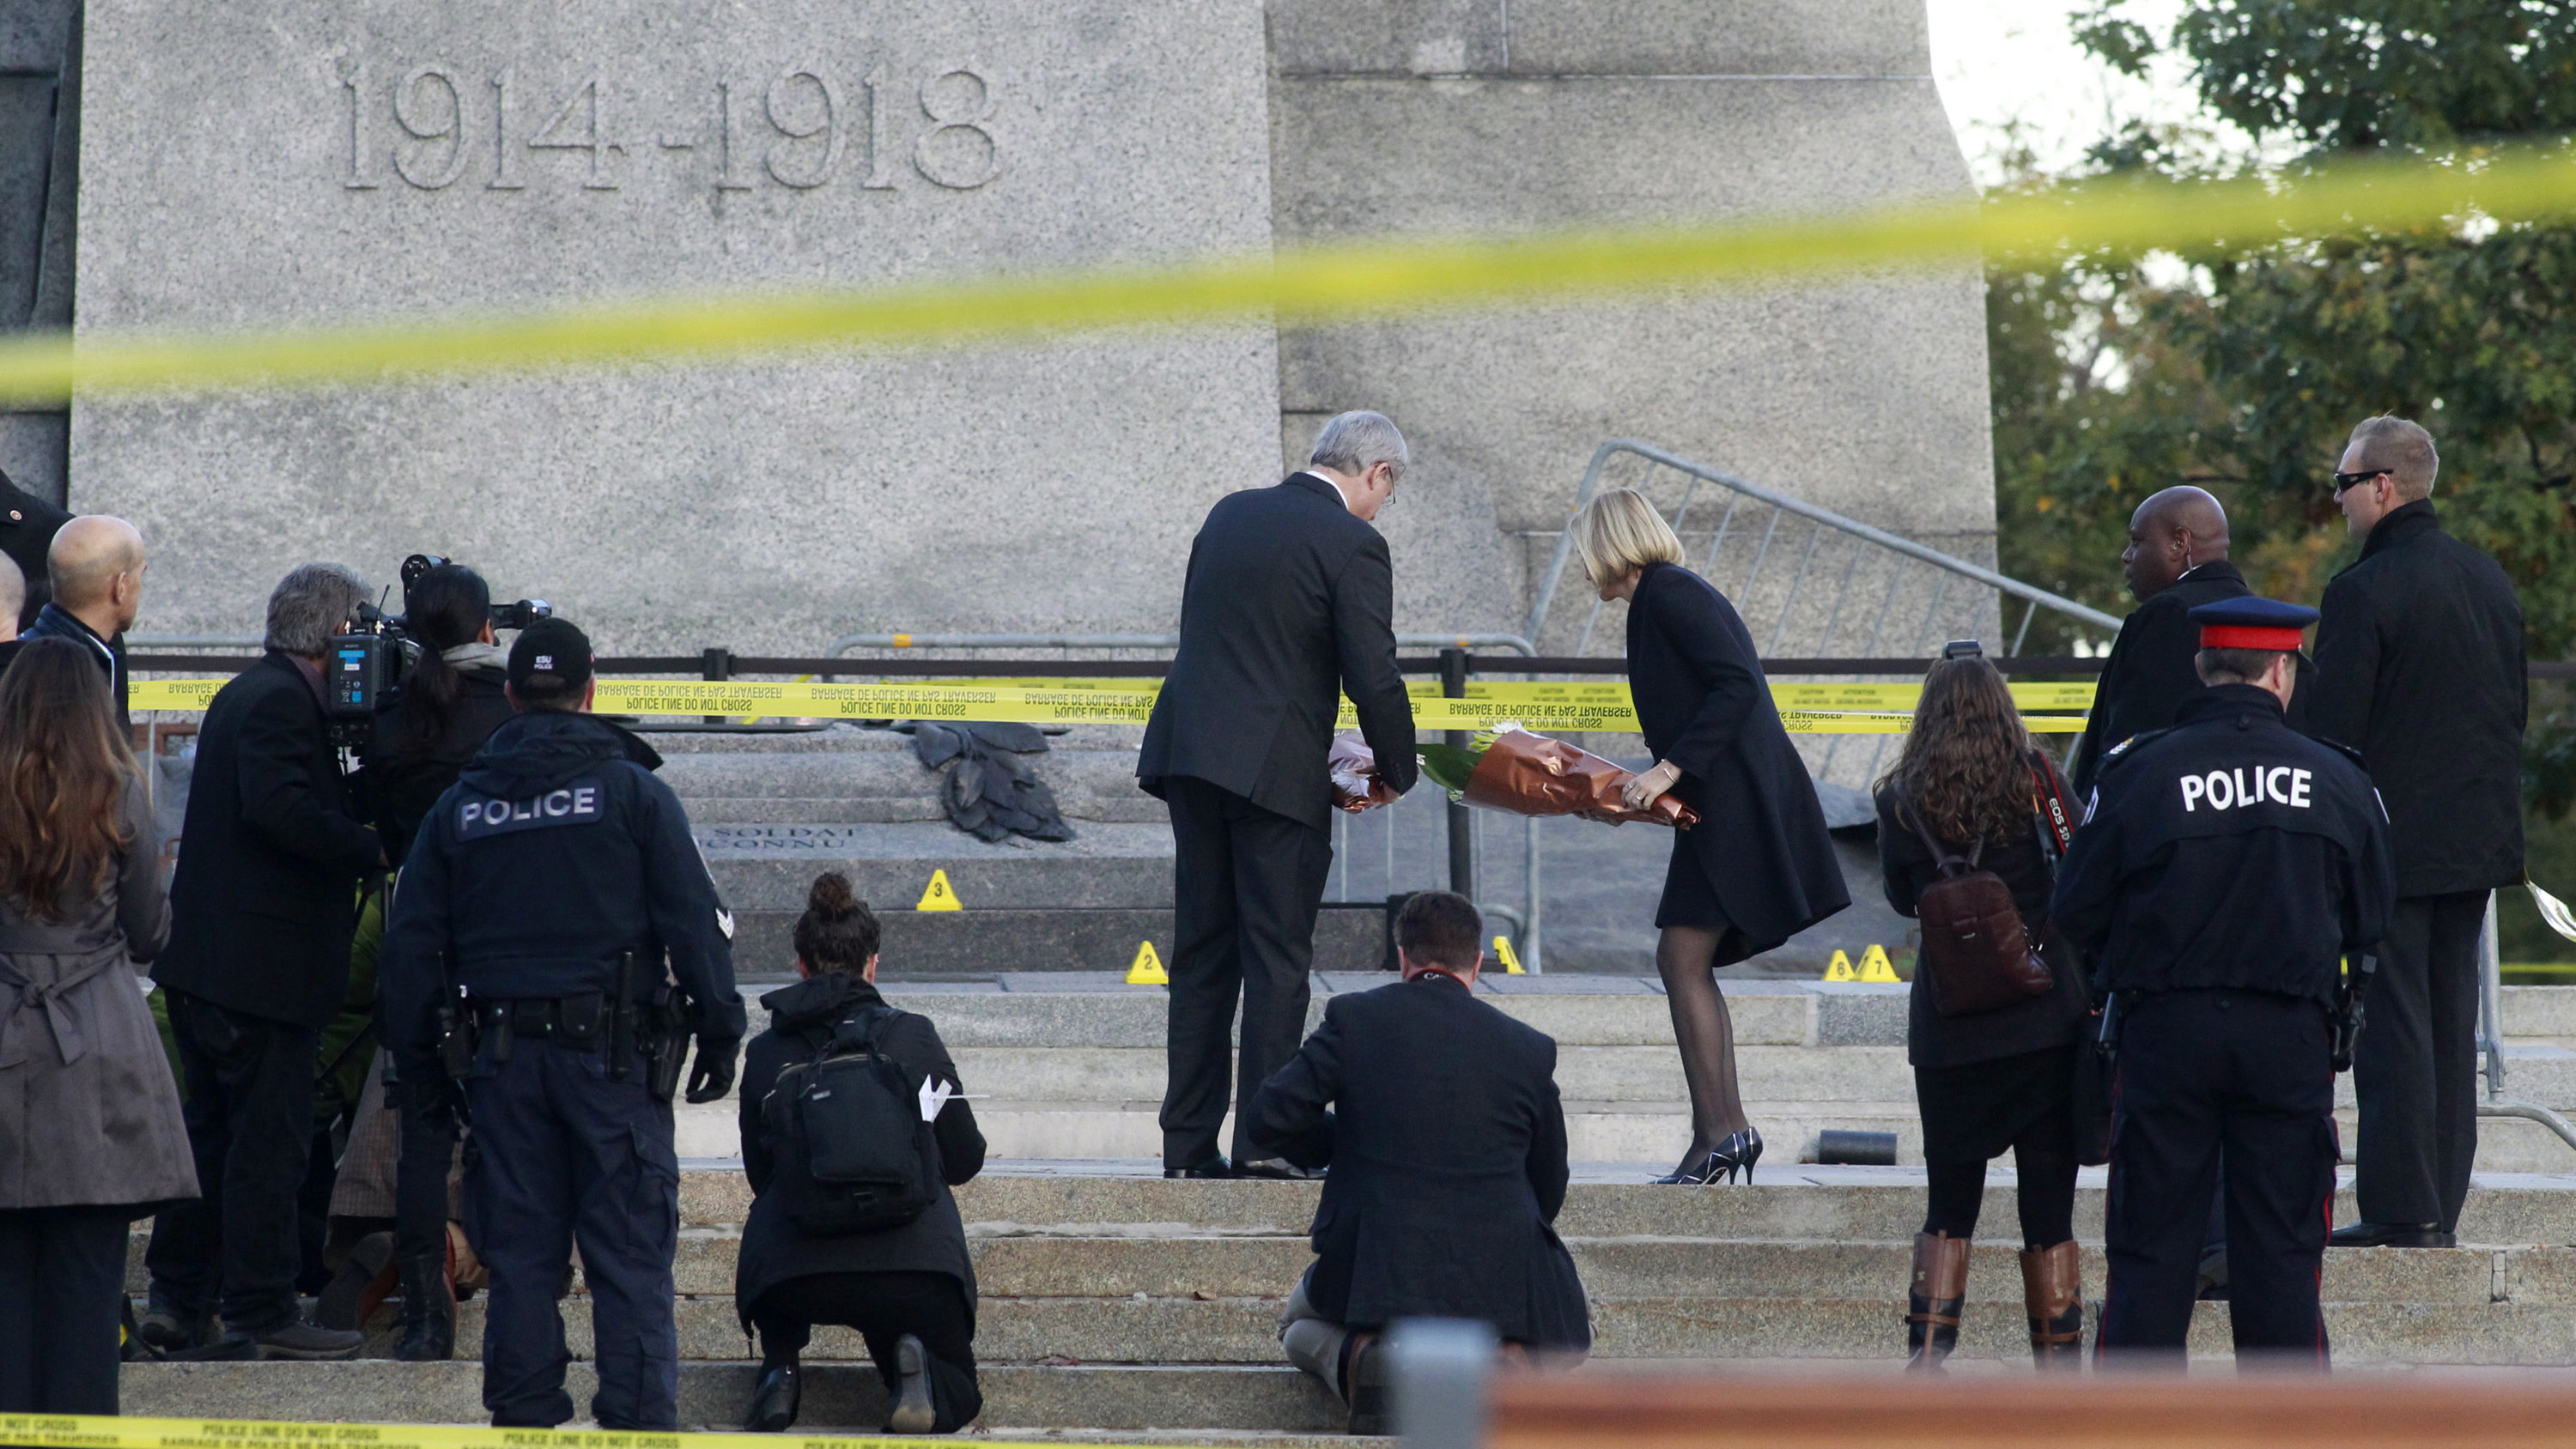 Canada's Prime Minister Stephen Harper and his wife, Laureen Harper, lay flowers at the Canadian War Memorial in downtown Ottawa October 23, 2014. A gunman attacked Canada's parliament on Wednesday, with gunfire erupting near a room where Prime Minister Stephen Harper was speaking, and a soldier was fatally shot at the nearby war memorial, jolting the Canadian capital.